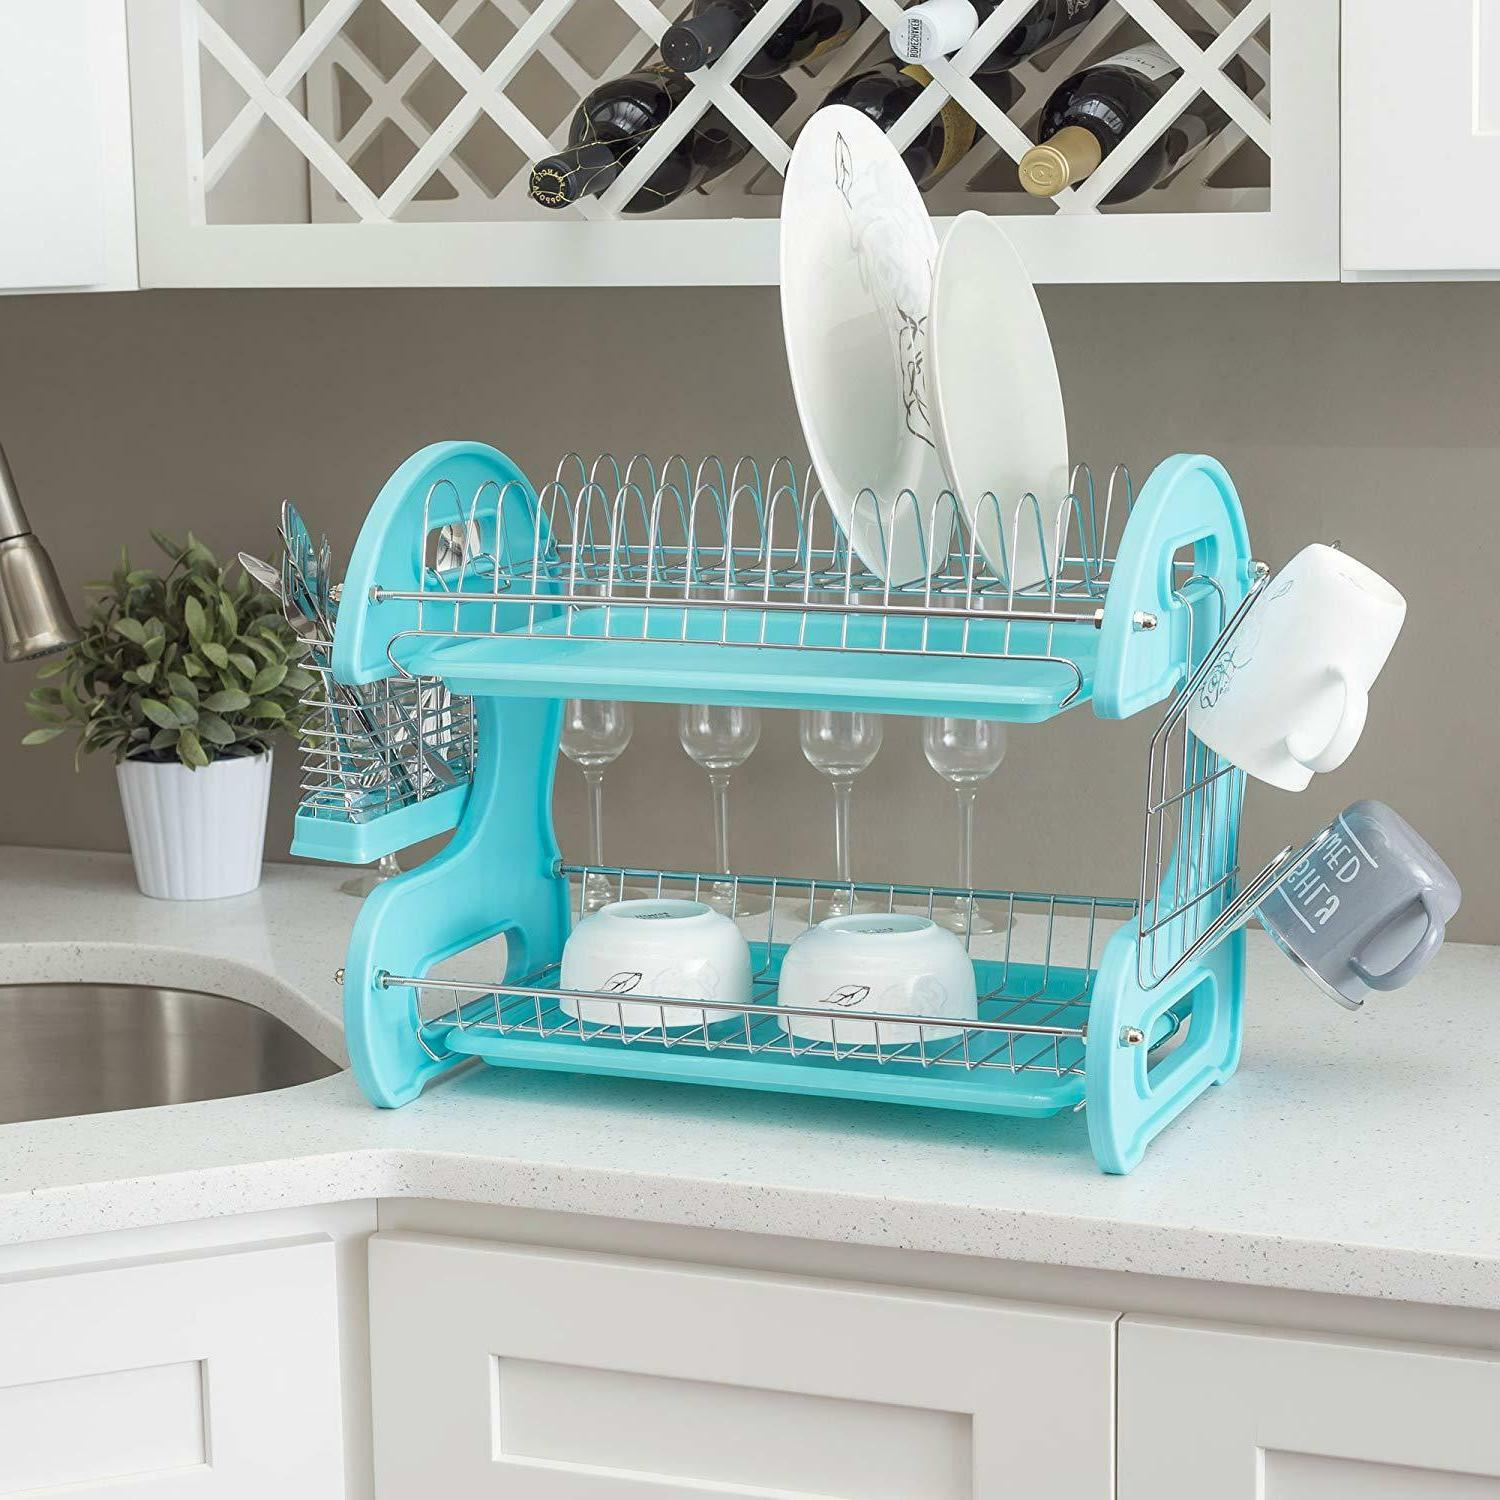 New Home Basics Plastic Dish 2-Tier - Turquoise /